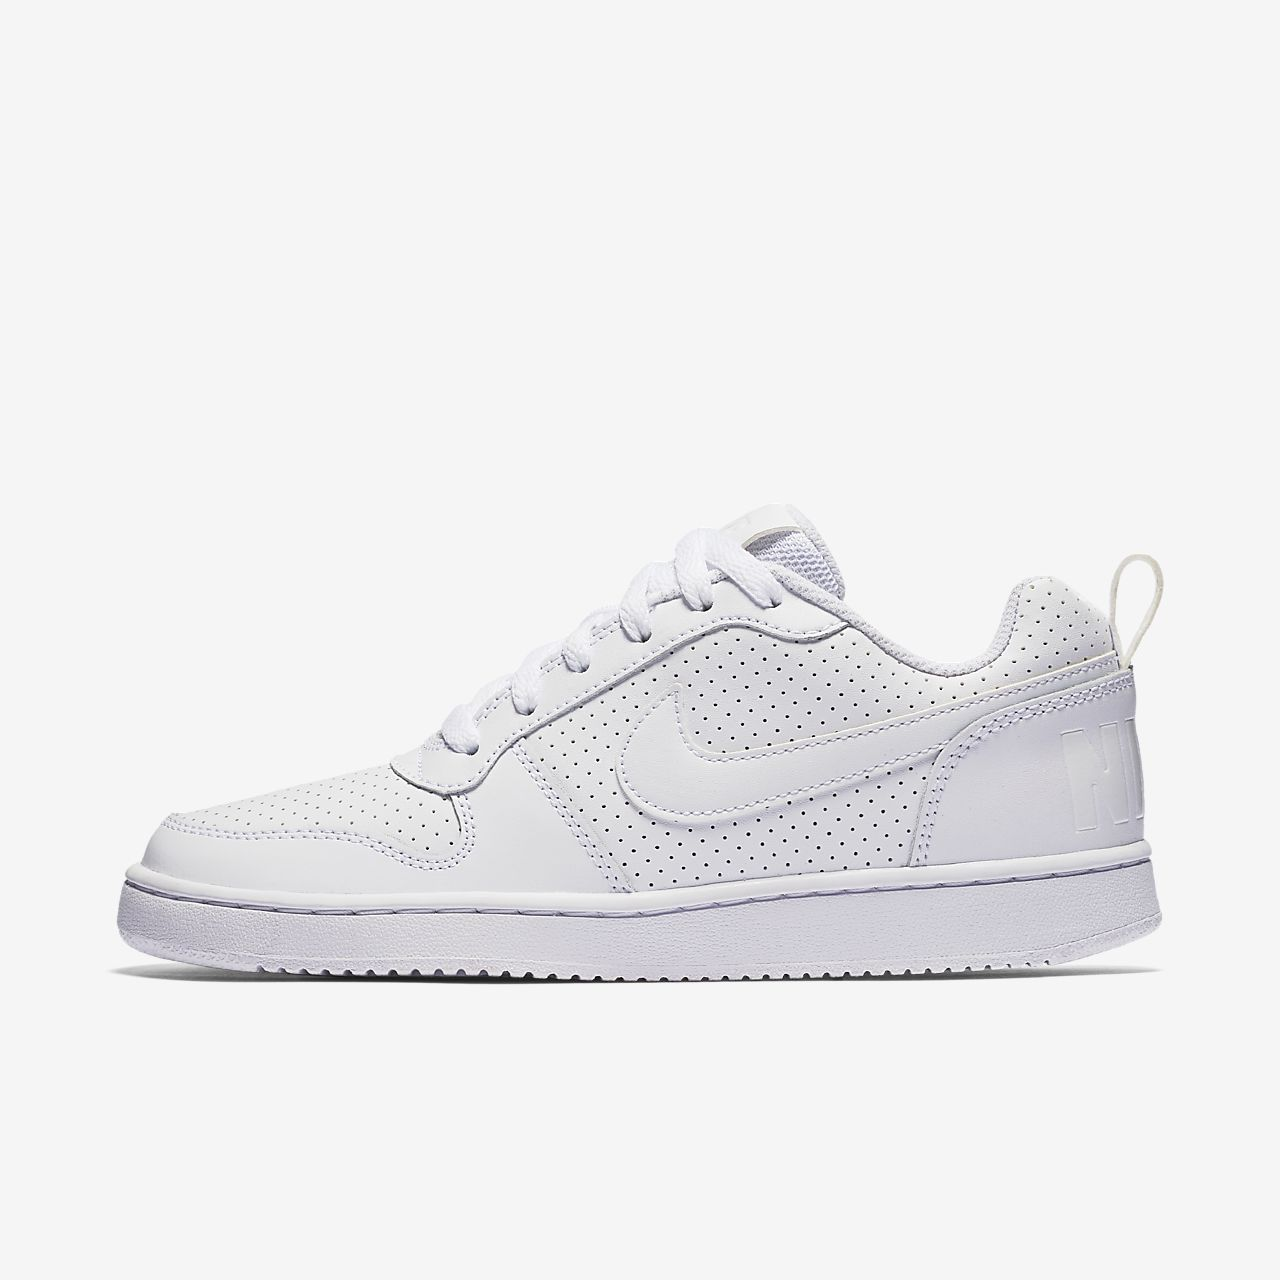 629466868996fe Low Resolution Nike Court Borough Low Damenschuh Nike Court Borough Low  Damenschuh